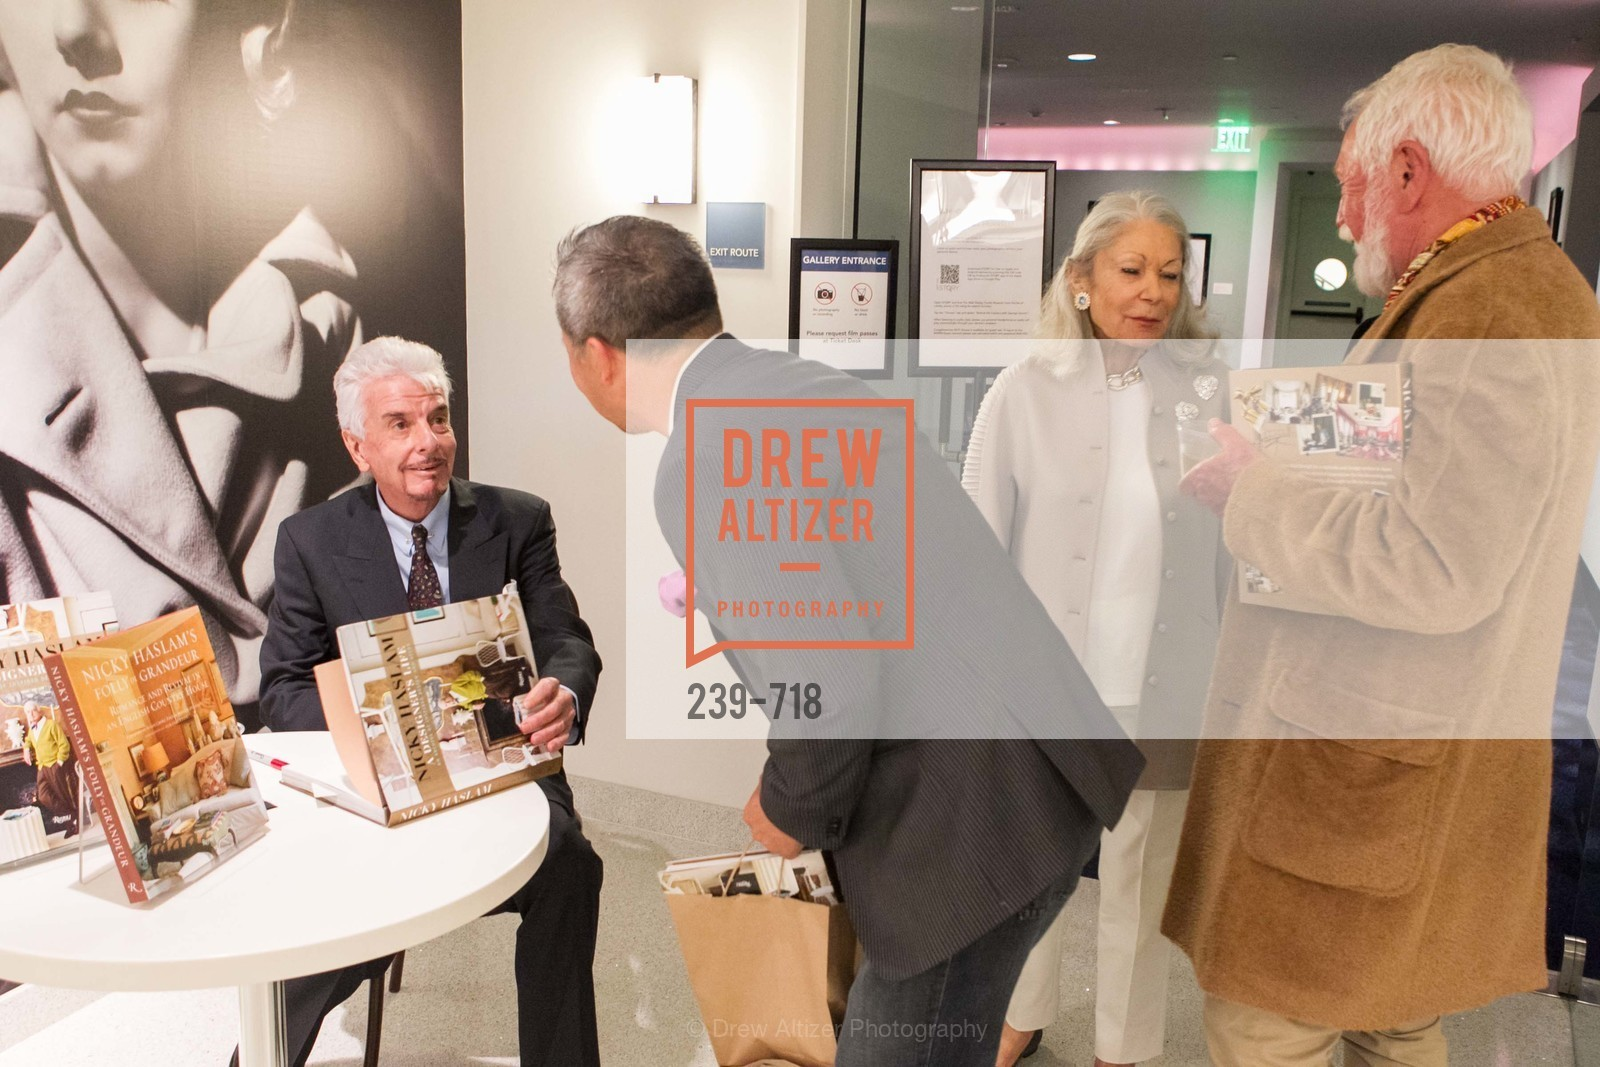 Nicky Haslam, Benjamin Dhong, Denise Hale, Lewis Sykes, ICAA Hosts NICKY HASLAM'S Lecture and Book Signing, US, May 11th, 2015,Drew Altizer, Drew Altizer Photography, full-service agency, private events, San Francisco photographer, photographer california